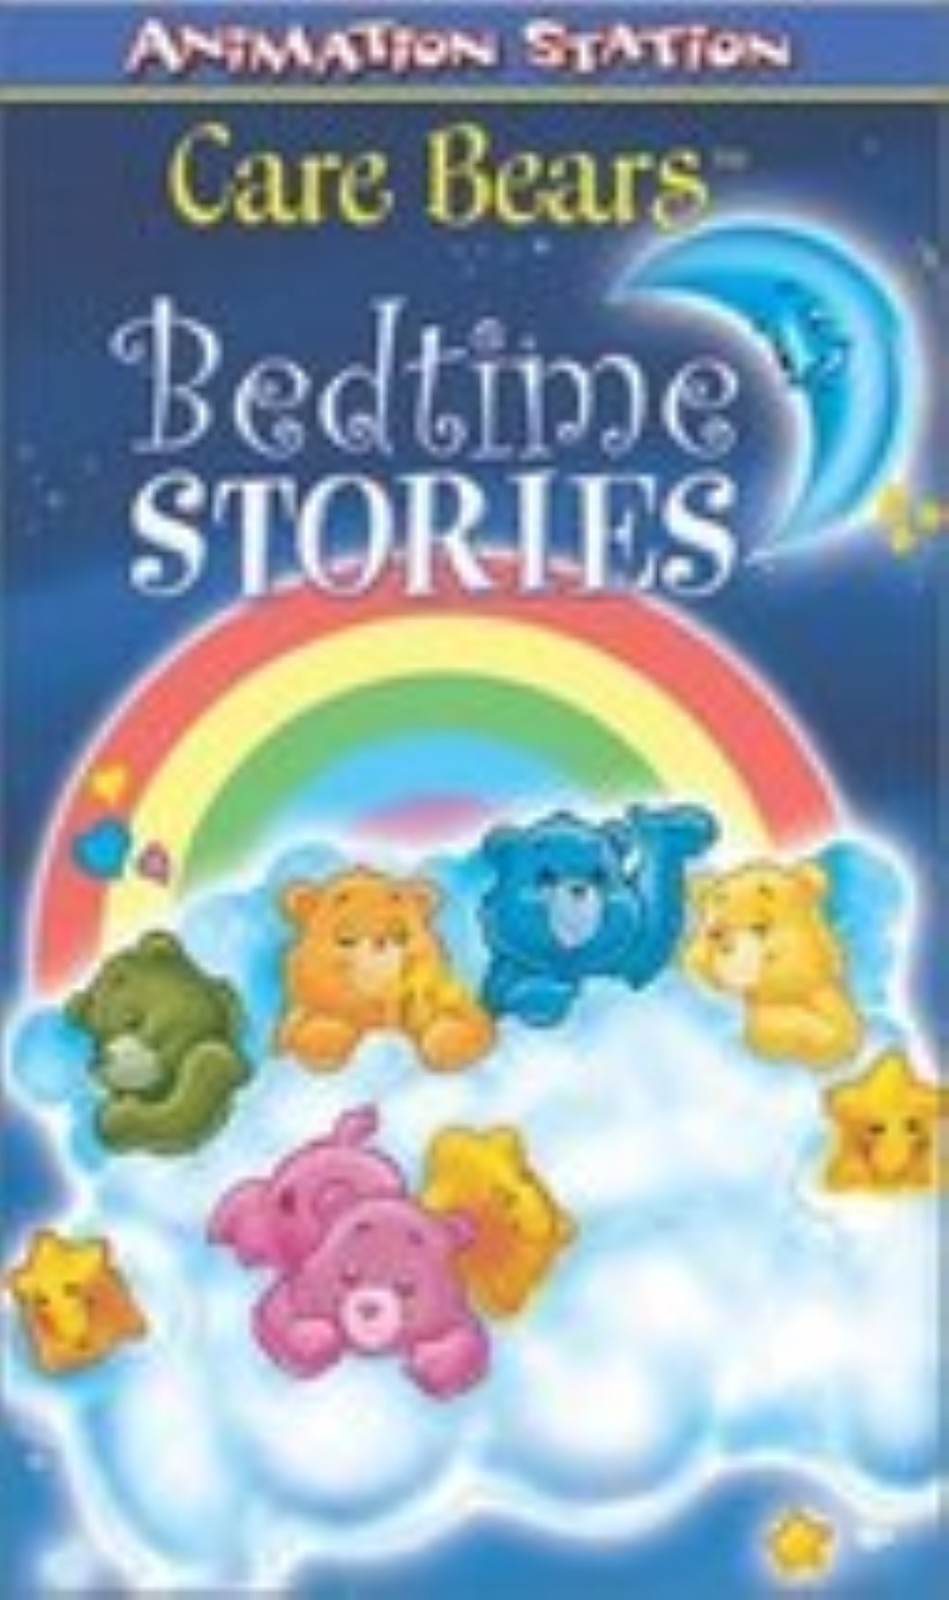 Care Bears Bedtime Stories Vhs